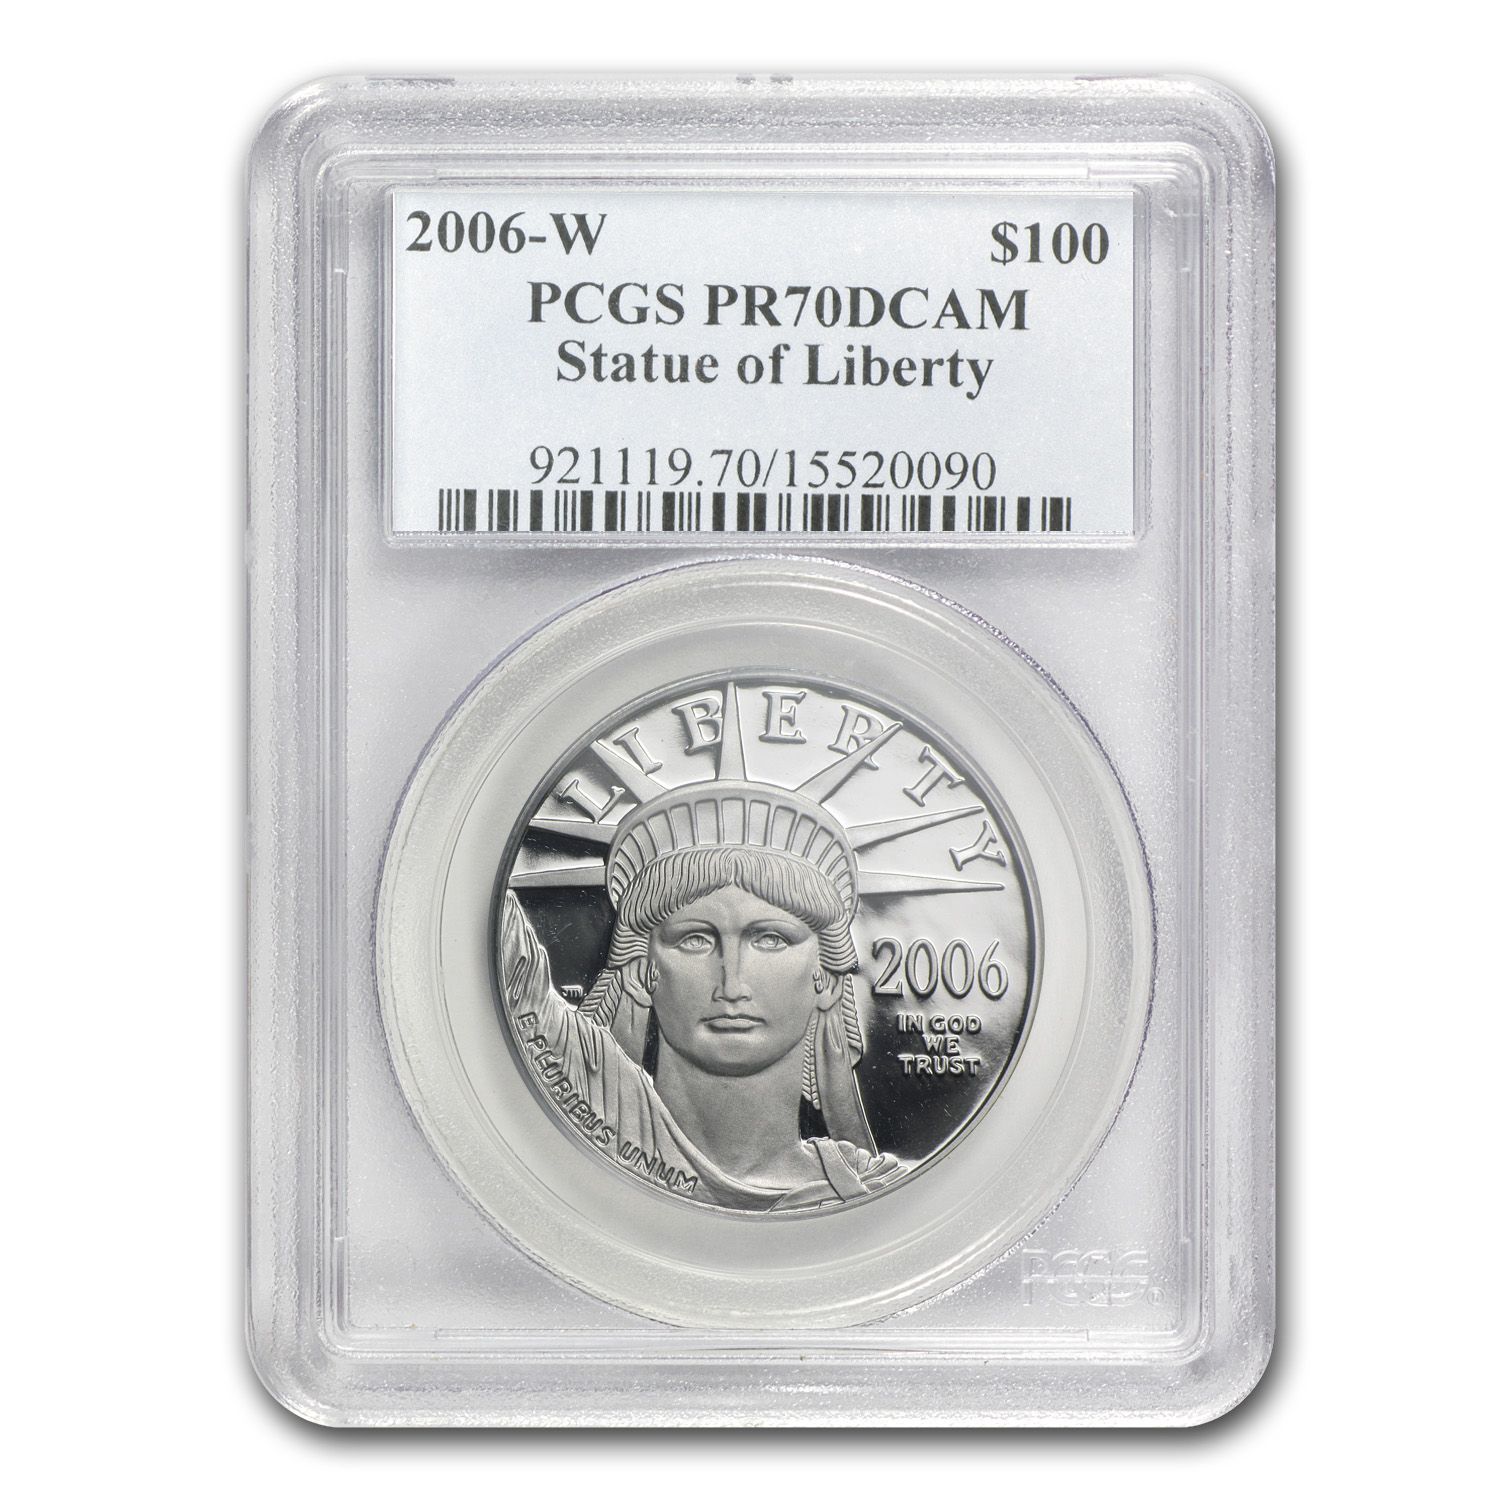 2006-W 4-Coin Proof Platinum American Eagle Set PR-70 PCGS